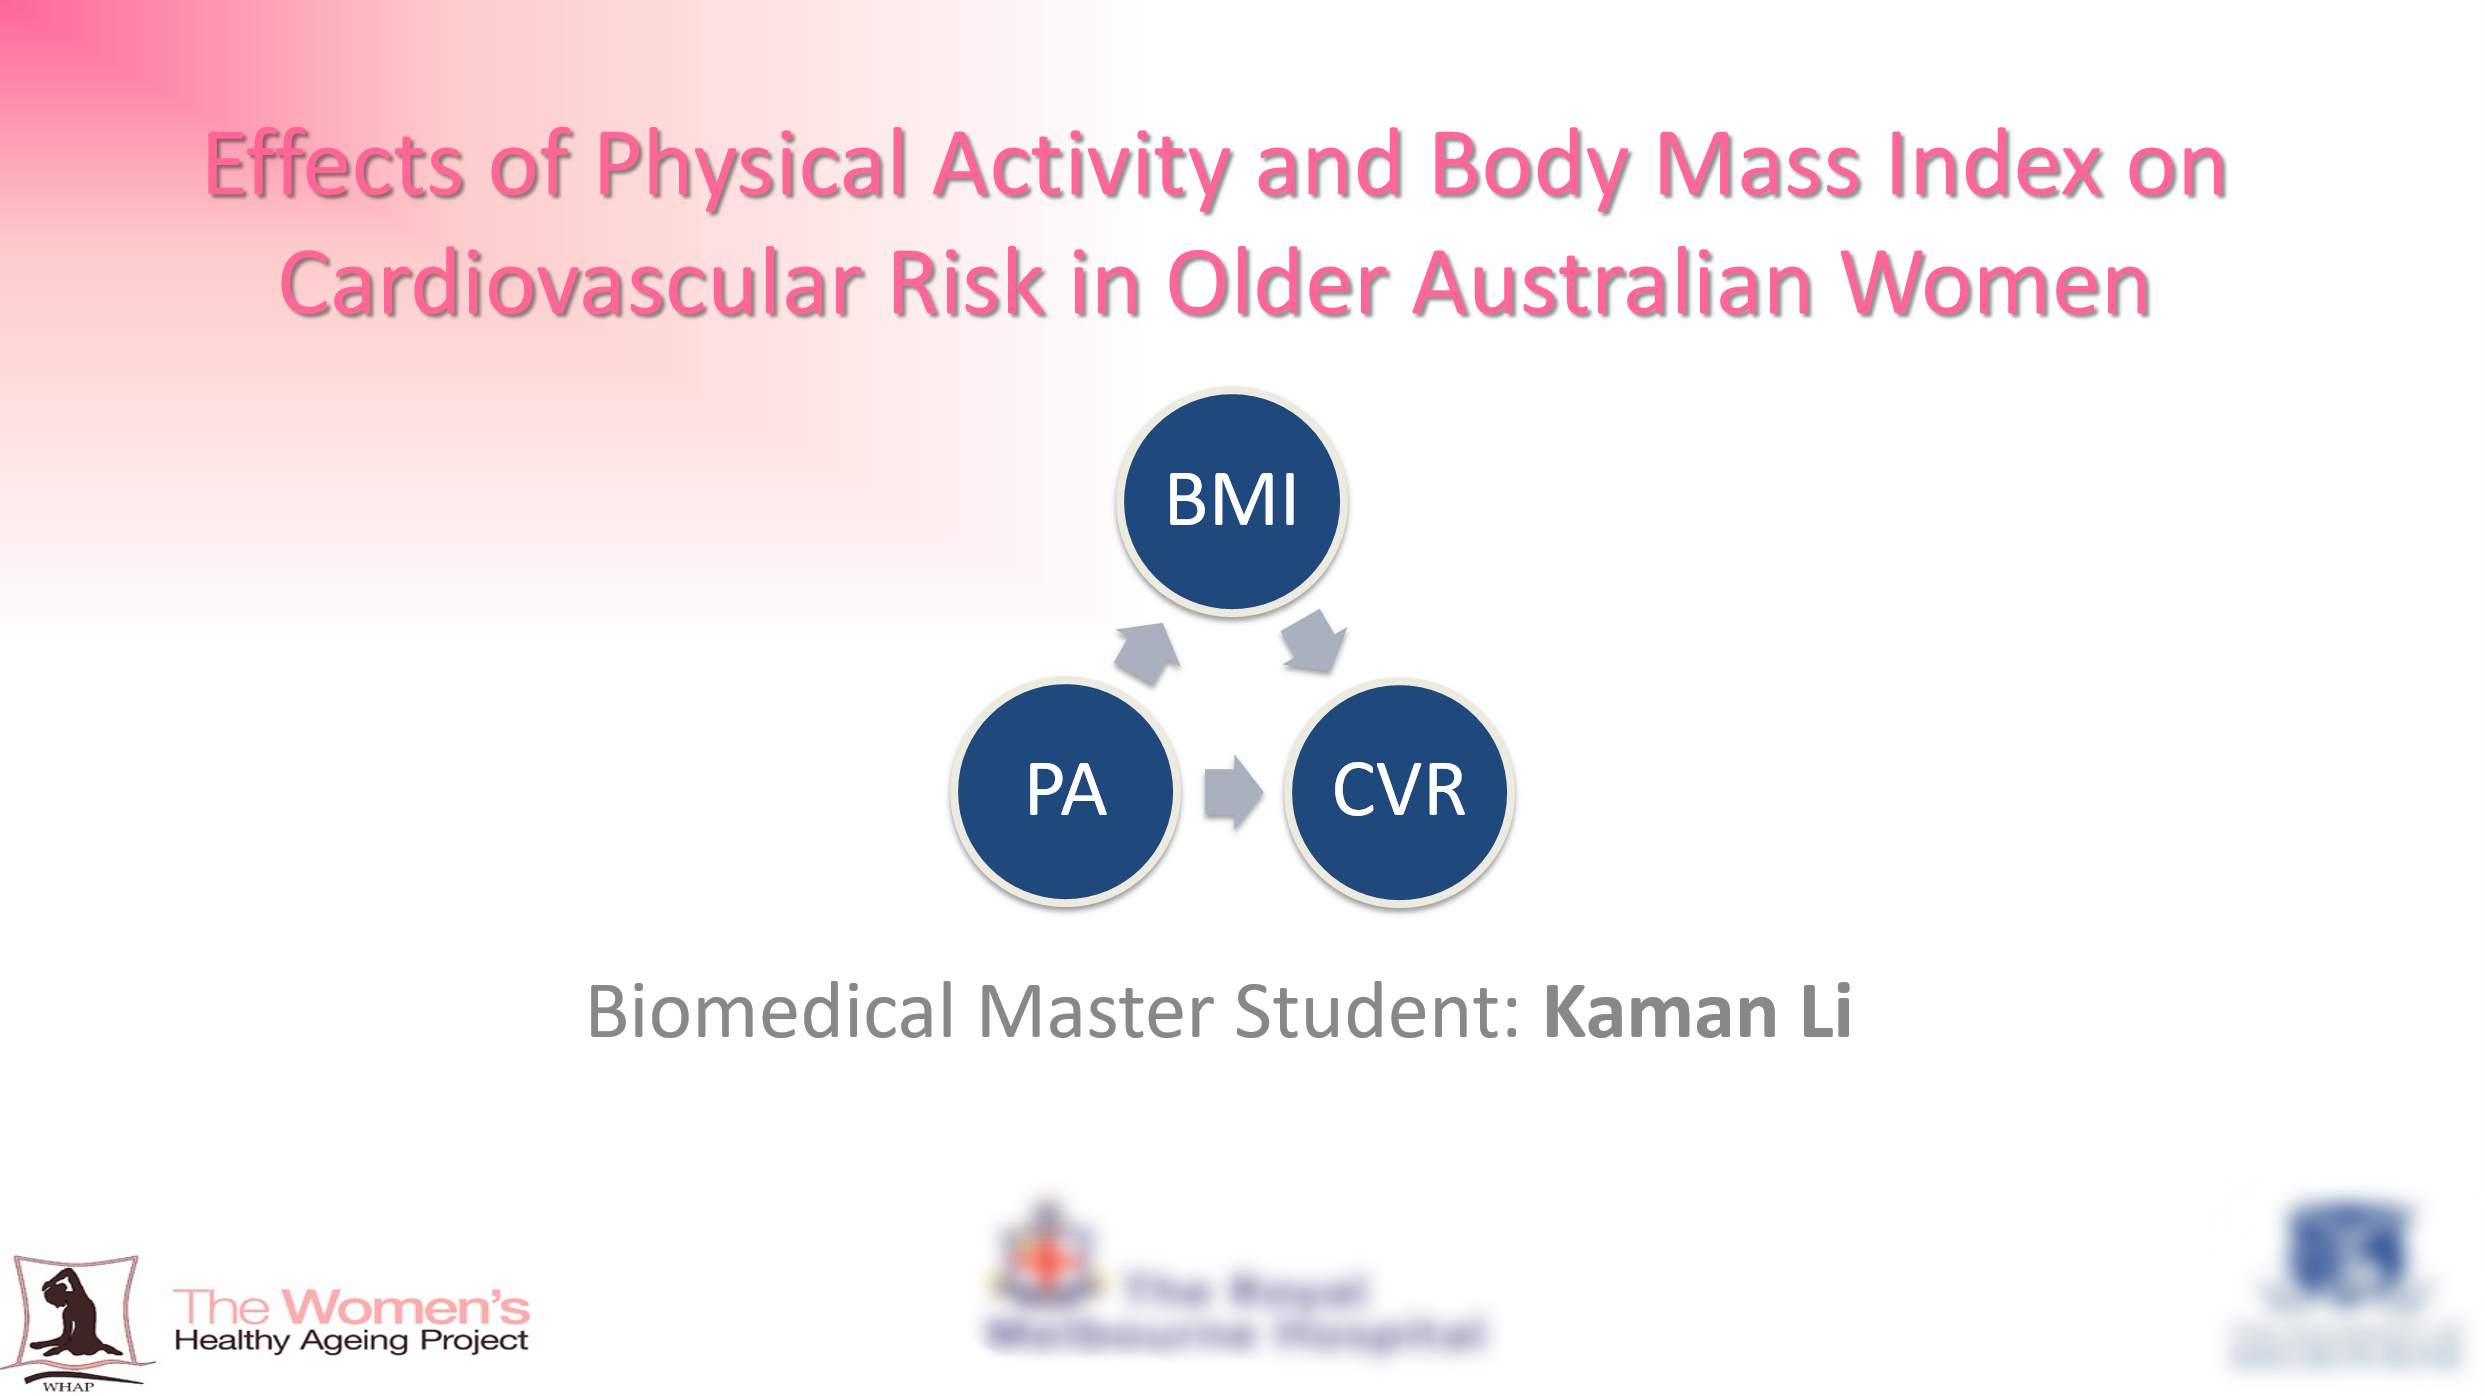 Effects of Physical Activity and Body Mass Index on Cardiovascular Risk in Older Australian Women - Cardiovascular disease (CVD) is the leading cause of death worldwide, with more deaths occurring in women. Early detection of cardiovascular risk (CVR) is essential to cardiovascular research. This research found that the odds of developing high CVR were doubled in overweight women and almost three times greater in obese women compared to women with a healthy BMI. Physical activity also had an effect on CVR, though this was less marked.Citation: Li, K., et al. (2017). Effects of Physical Activity and Body Mass Index on Cardiovascular Risk in Older Australian Women. Paper presented at the 15th World Congress on Public Health, Melbourne, Australia, 3-7 April.